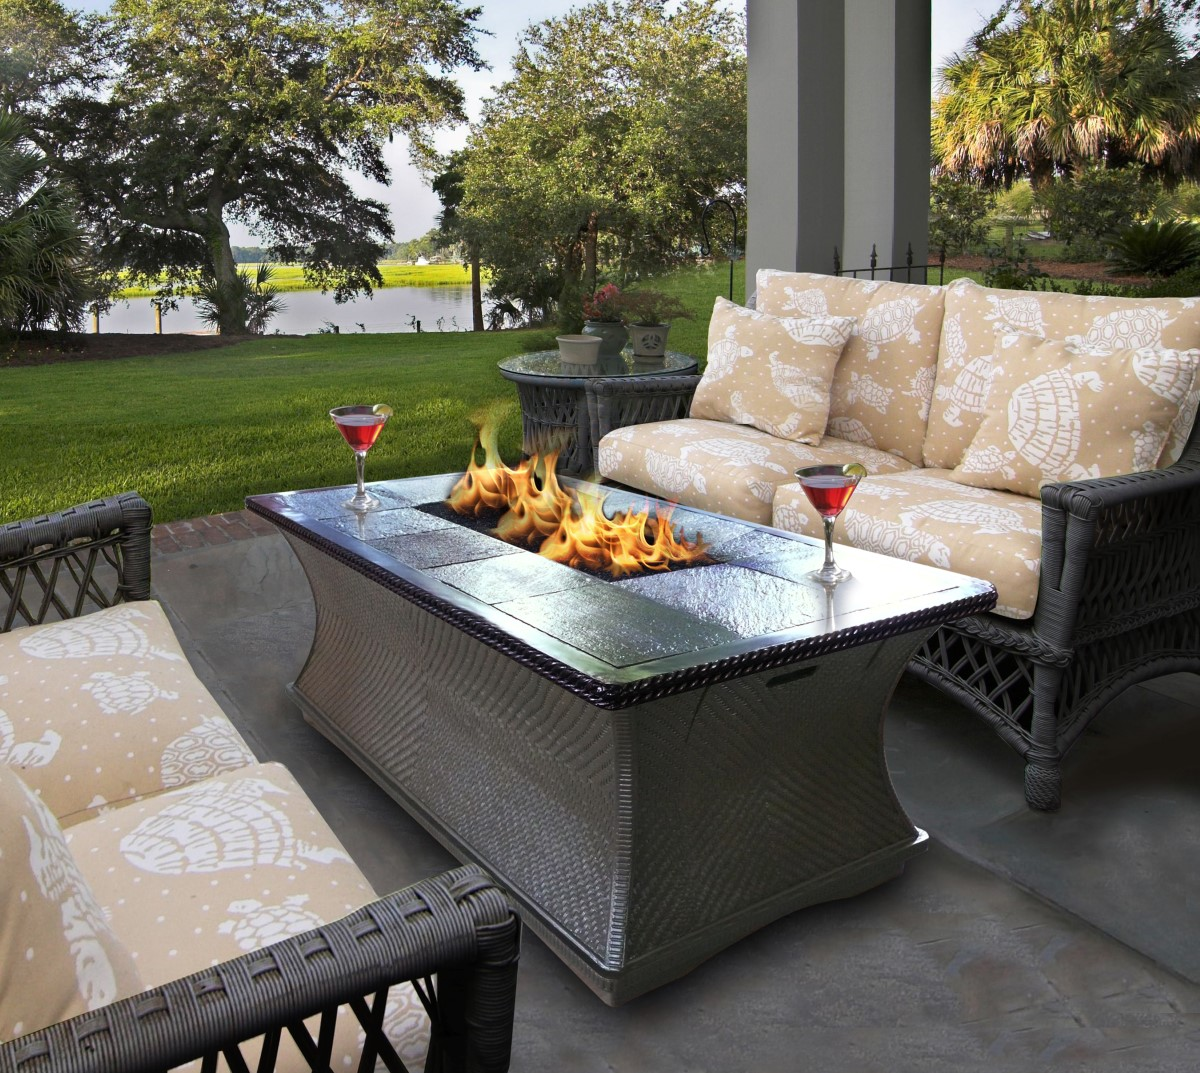 outdoor propane fire pit Deck Propane Fire Pit | FIREPLACE DESIGN IDEAS outdoor propane fire pit